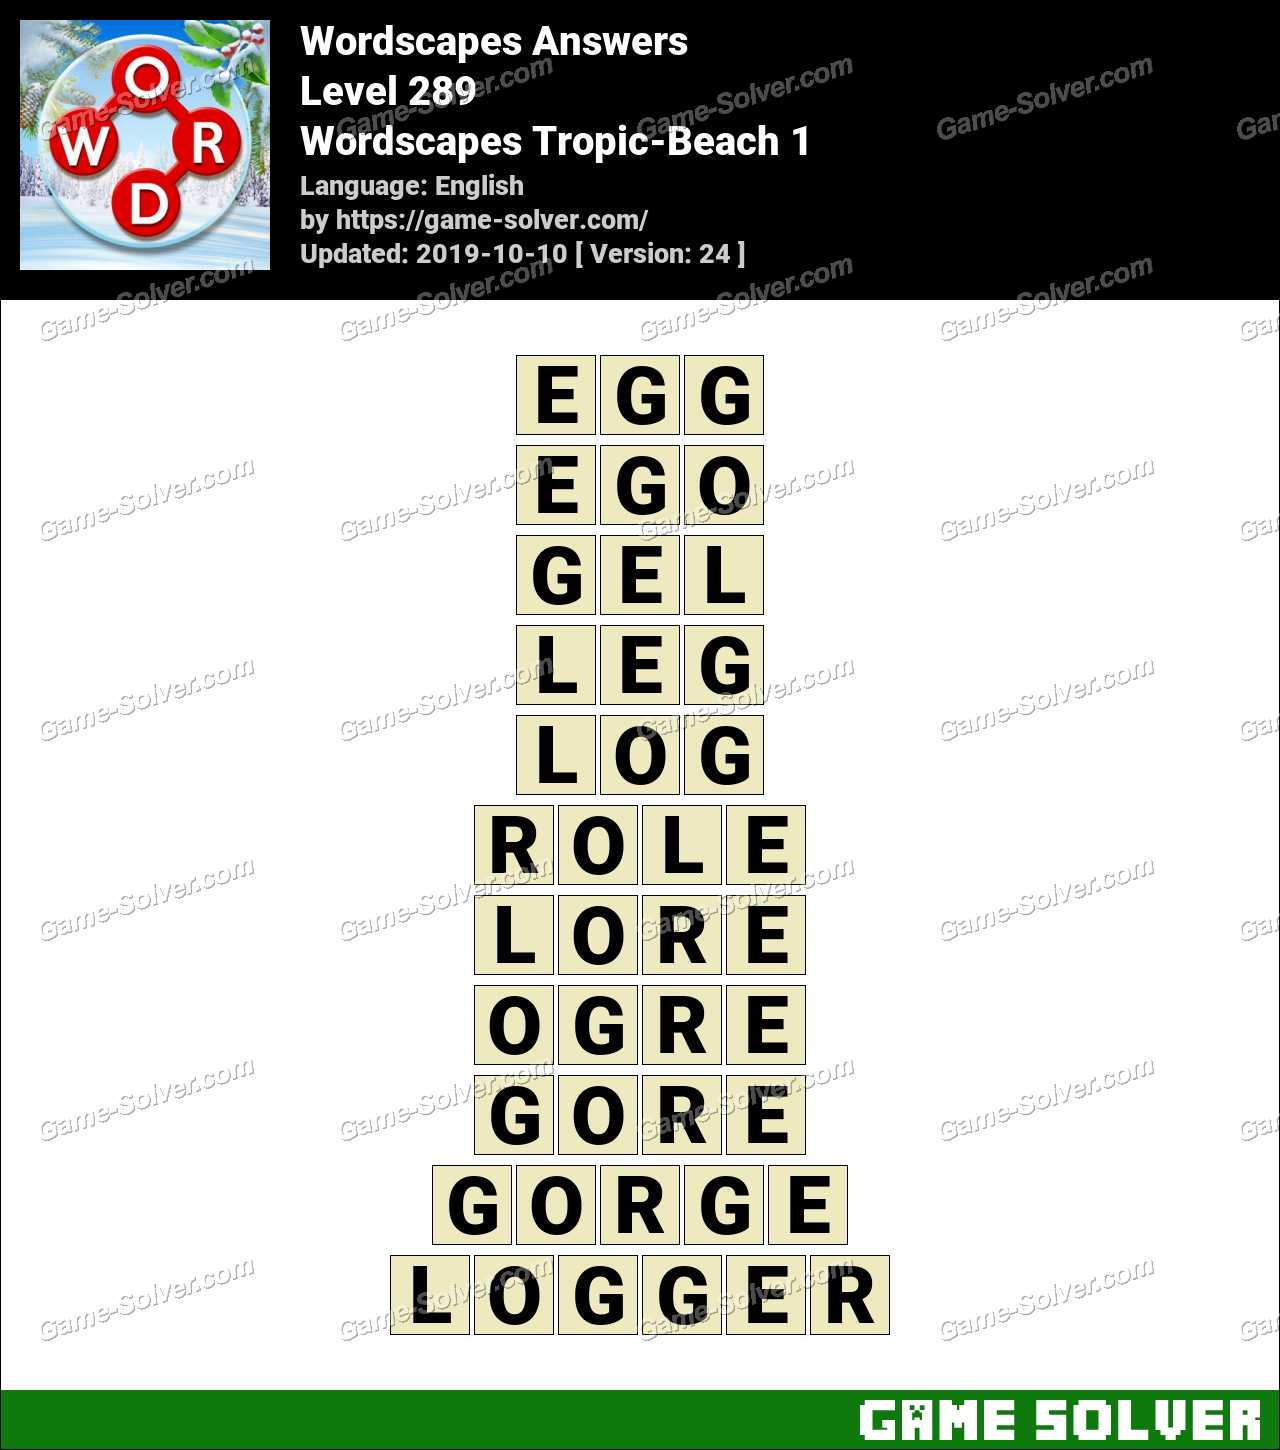 Wordscapes Tropic-Beach 1 Answers